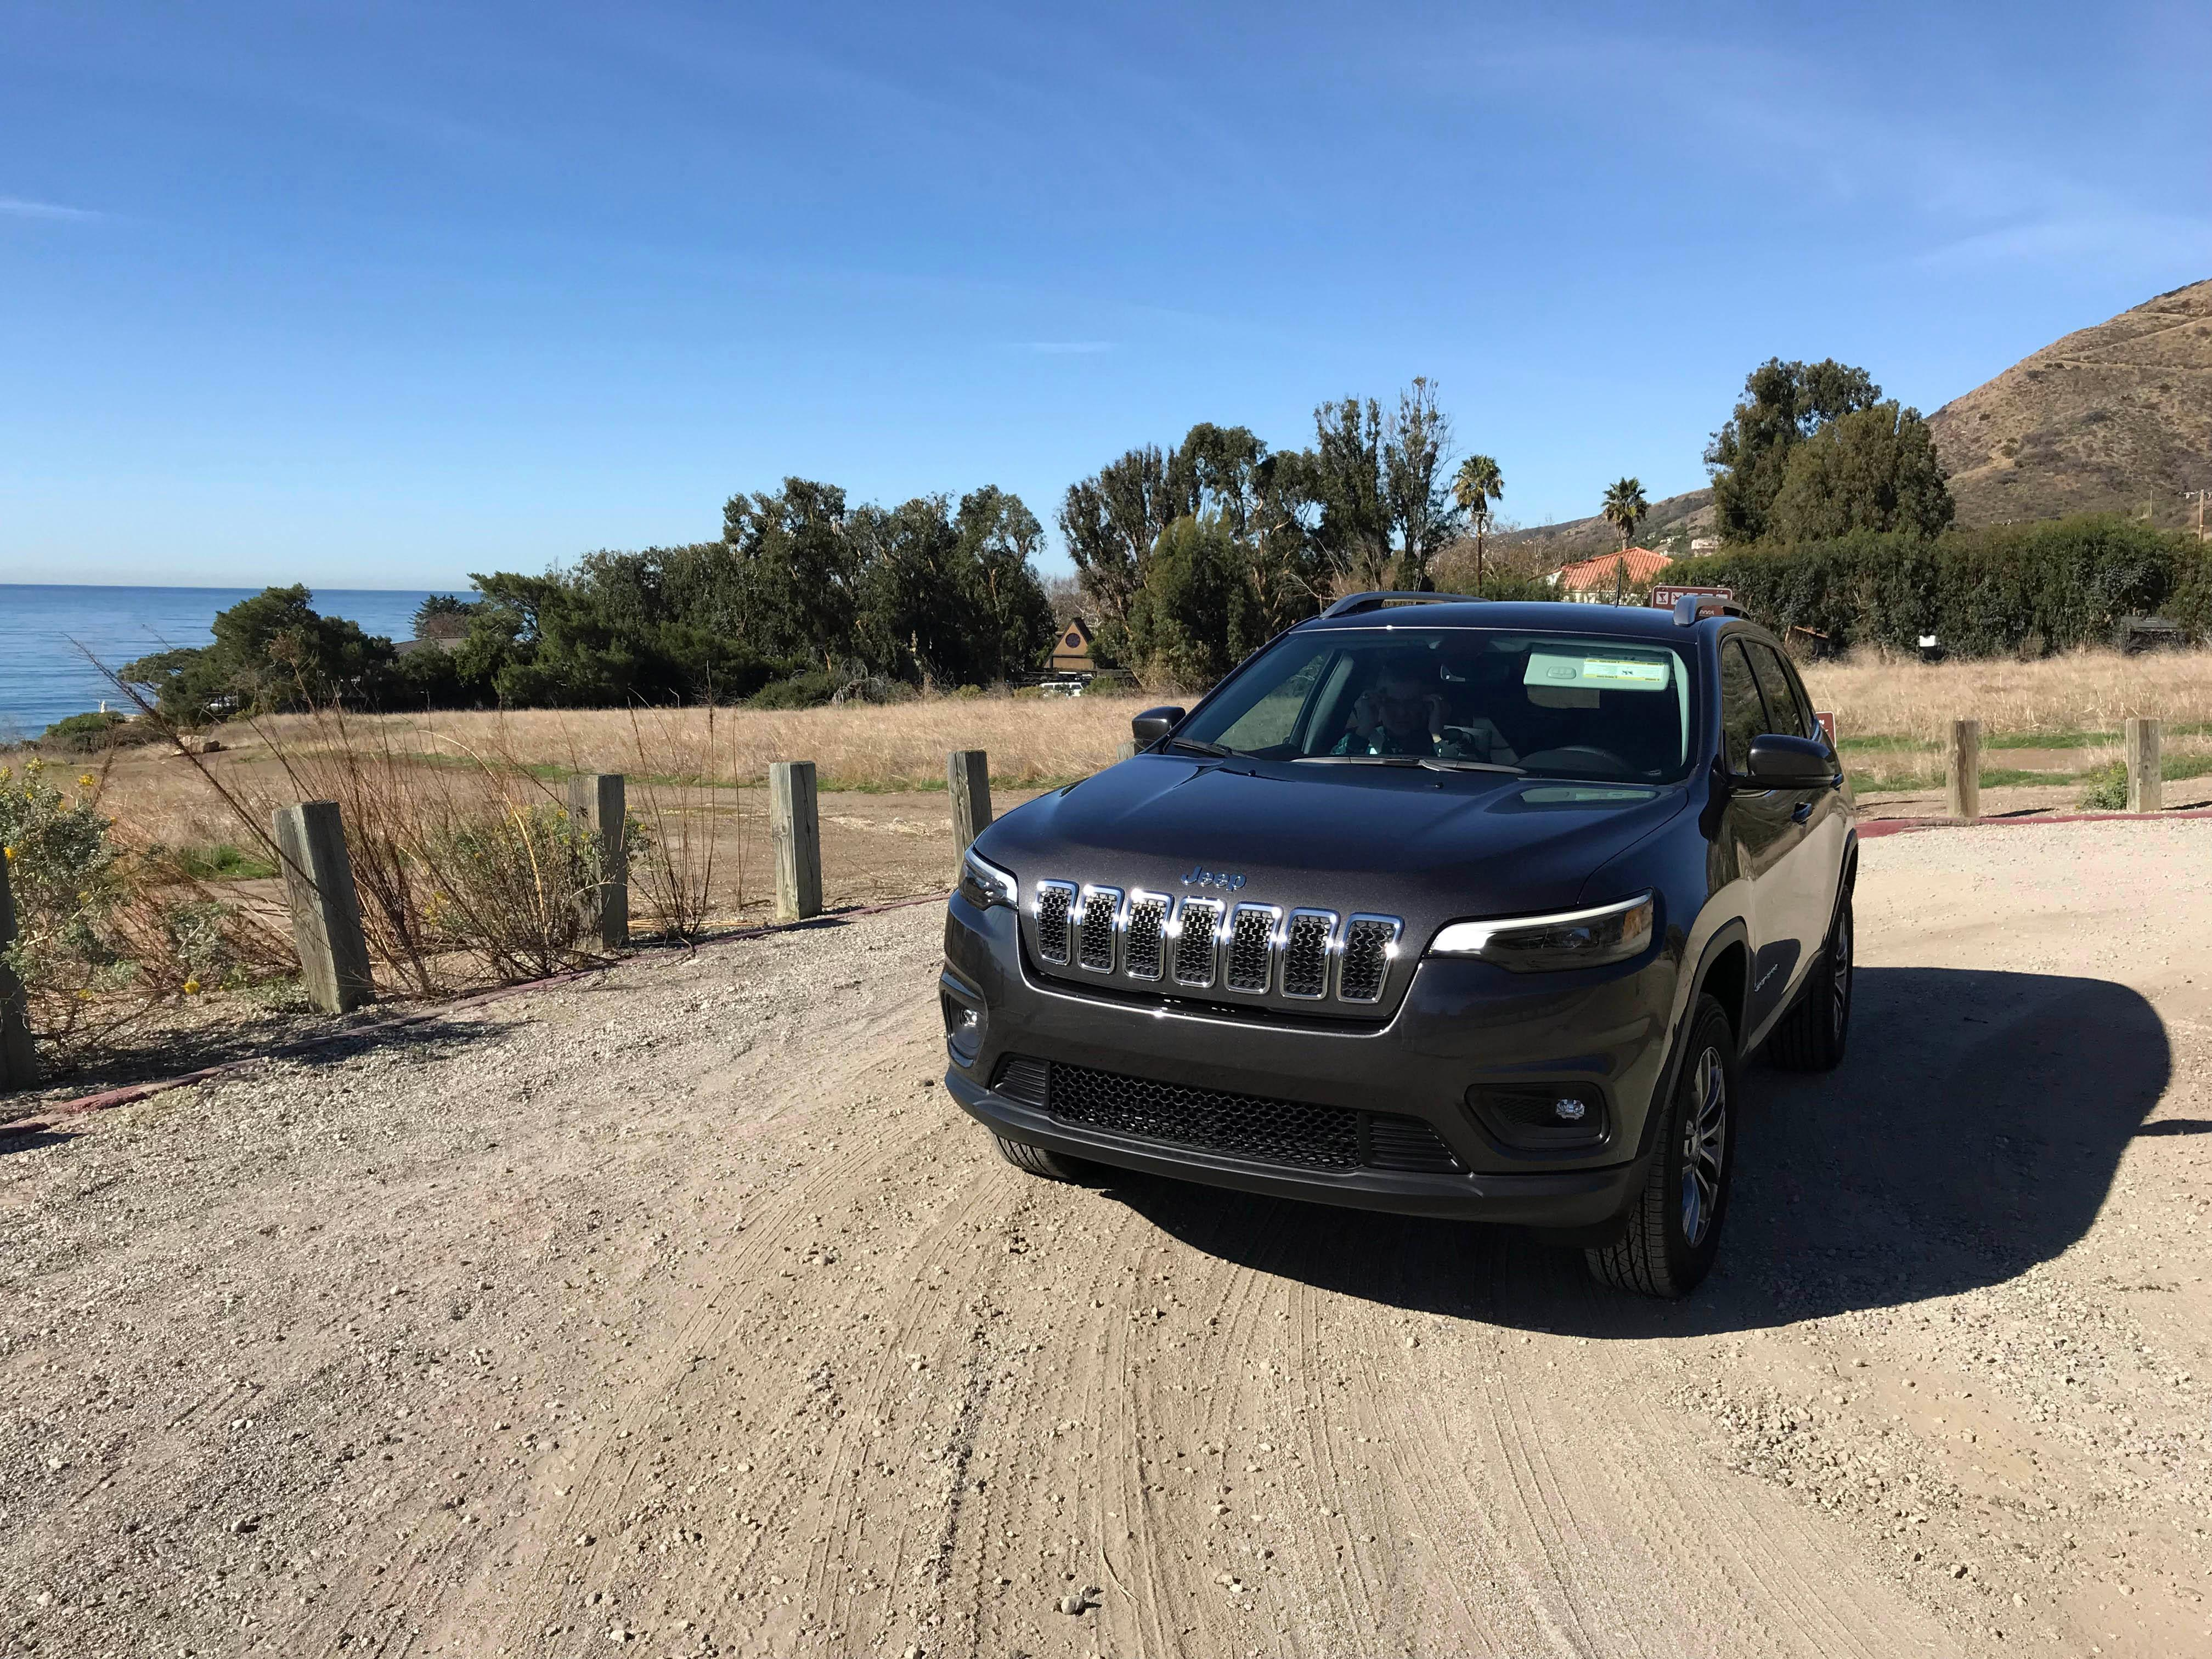 jeep test gordinier road group in jim glover ok course img drive at builds tulsa off dealership